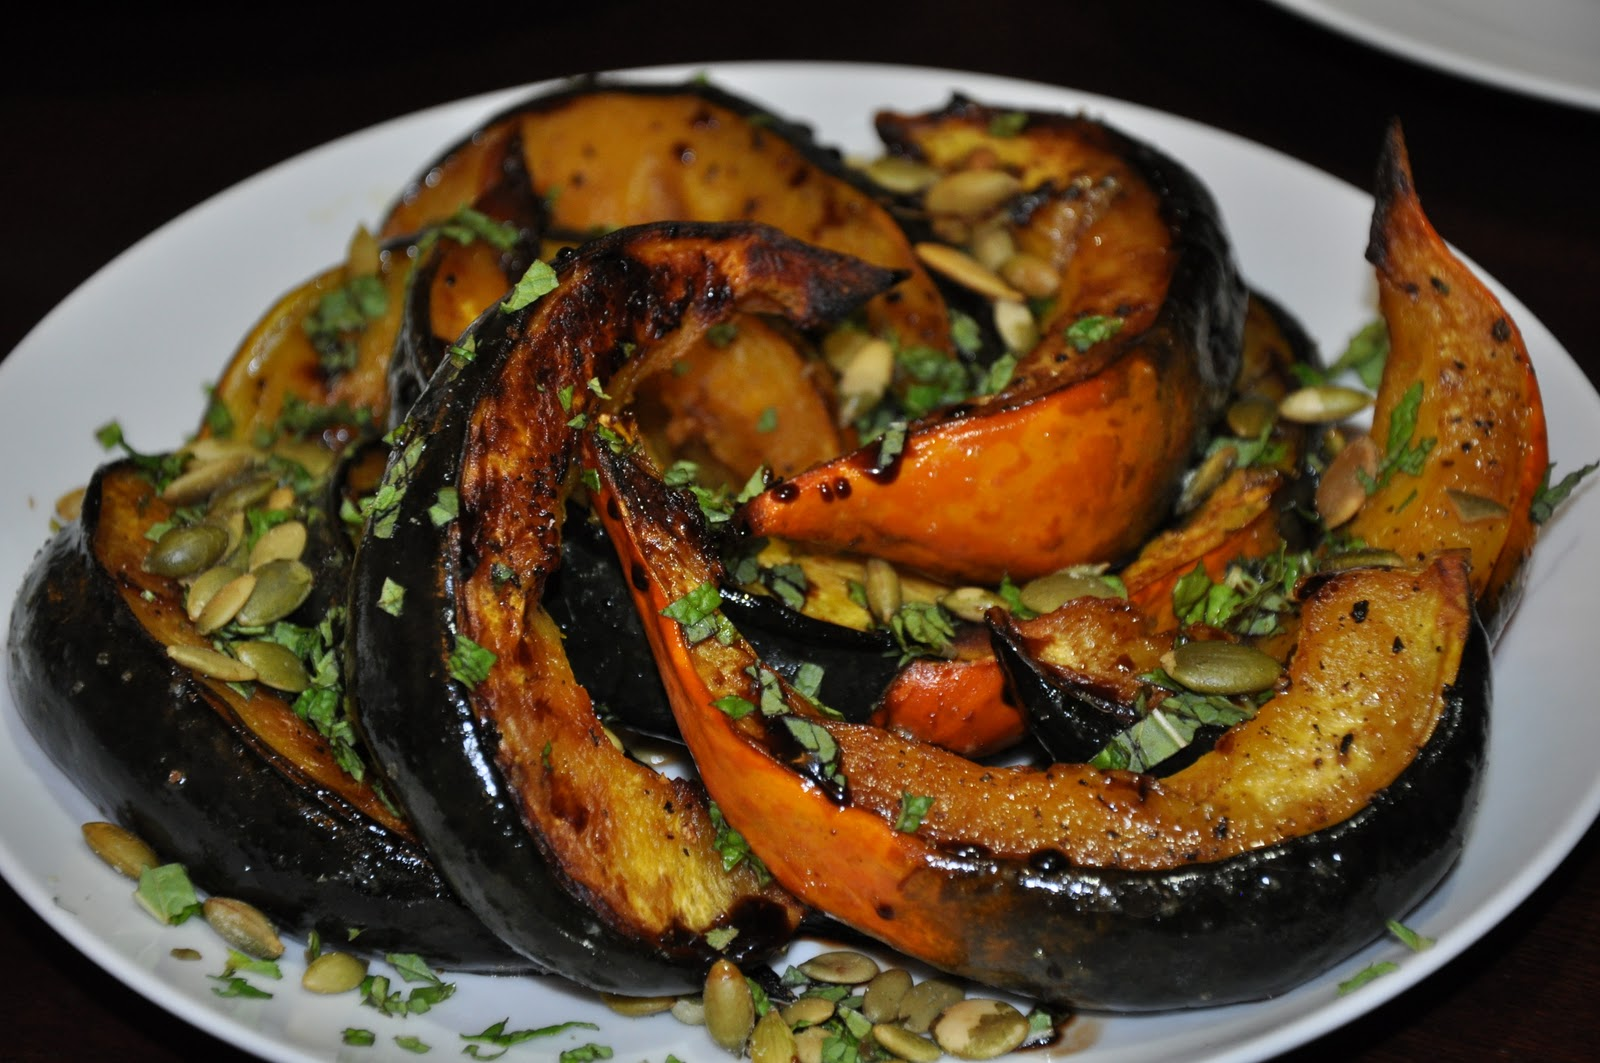 ... Roasted Squash with Mint and Toasted Pumpkin Seeds and Homemade